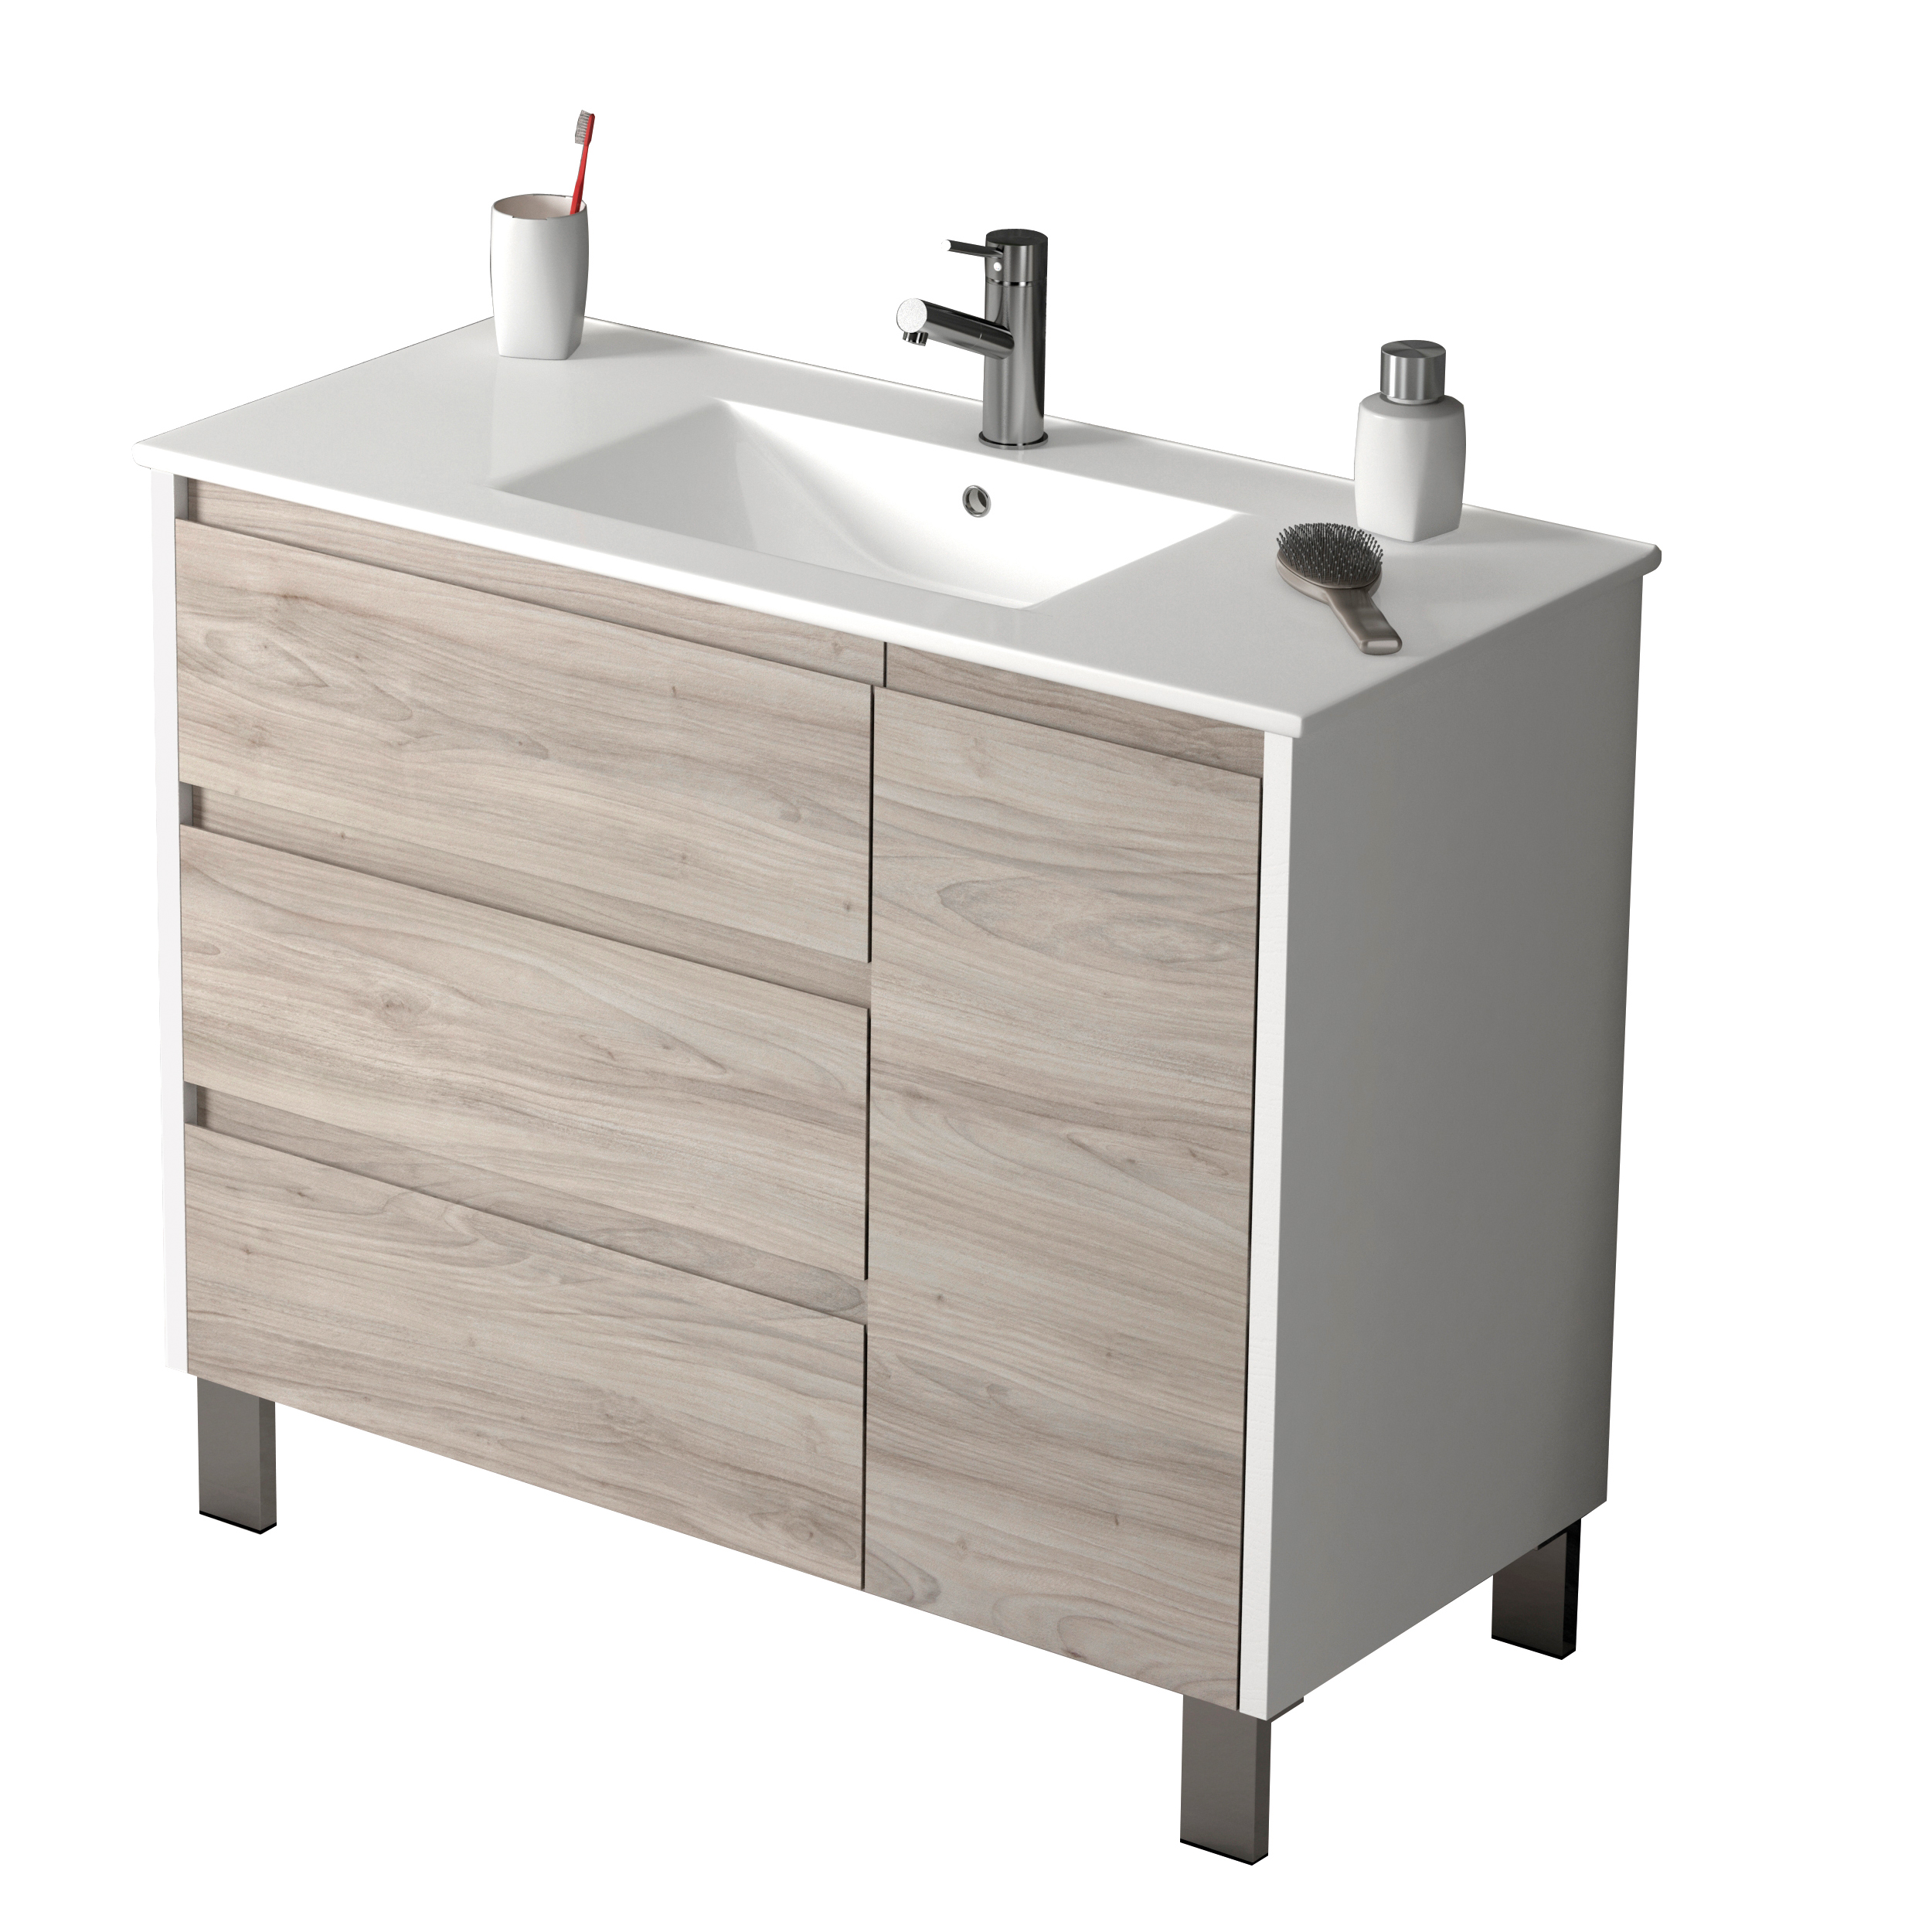 "EVVN543 39WHGRPN A Main - Eviva Bella 39"" White/Gray Pine Vanity with Porcelain sink"